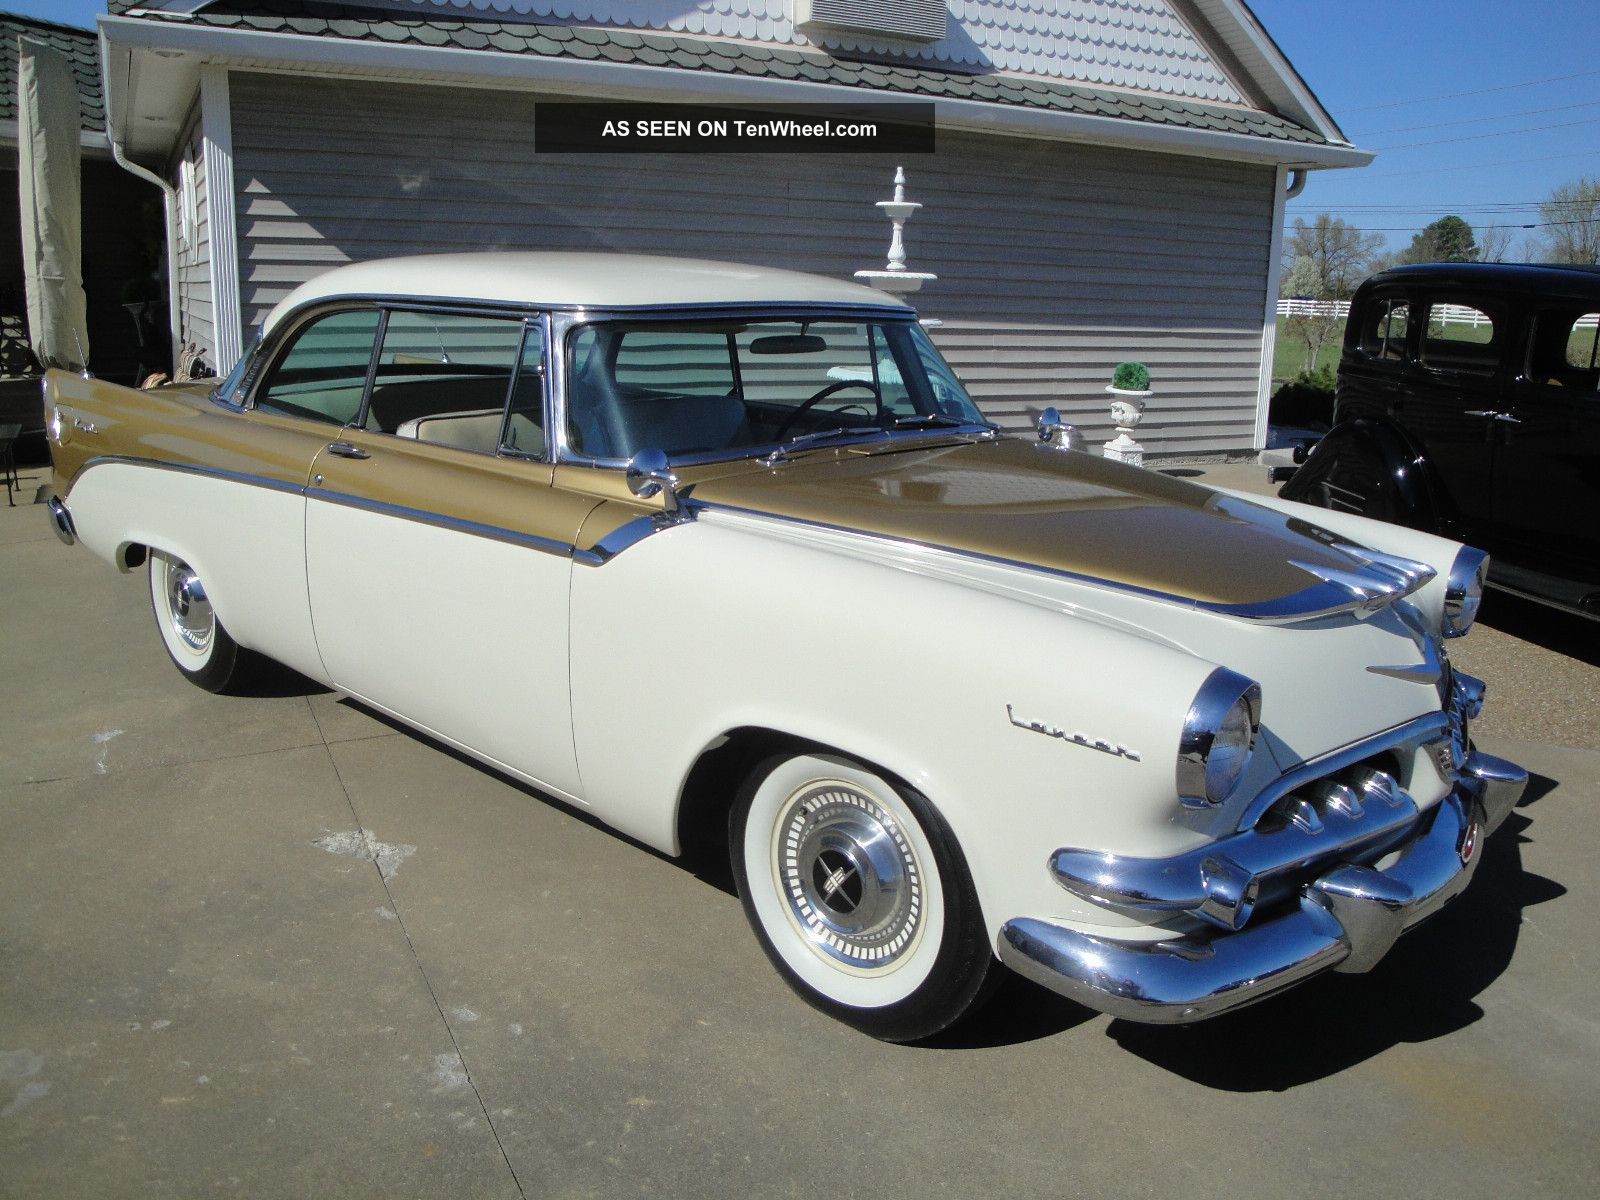 1956 Dodge Golden Lancer Full Restoration Hot - Rod (all -) 2 Door Hard Top Lancer photo